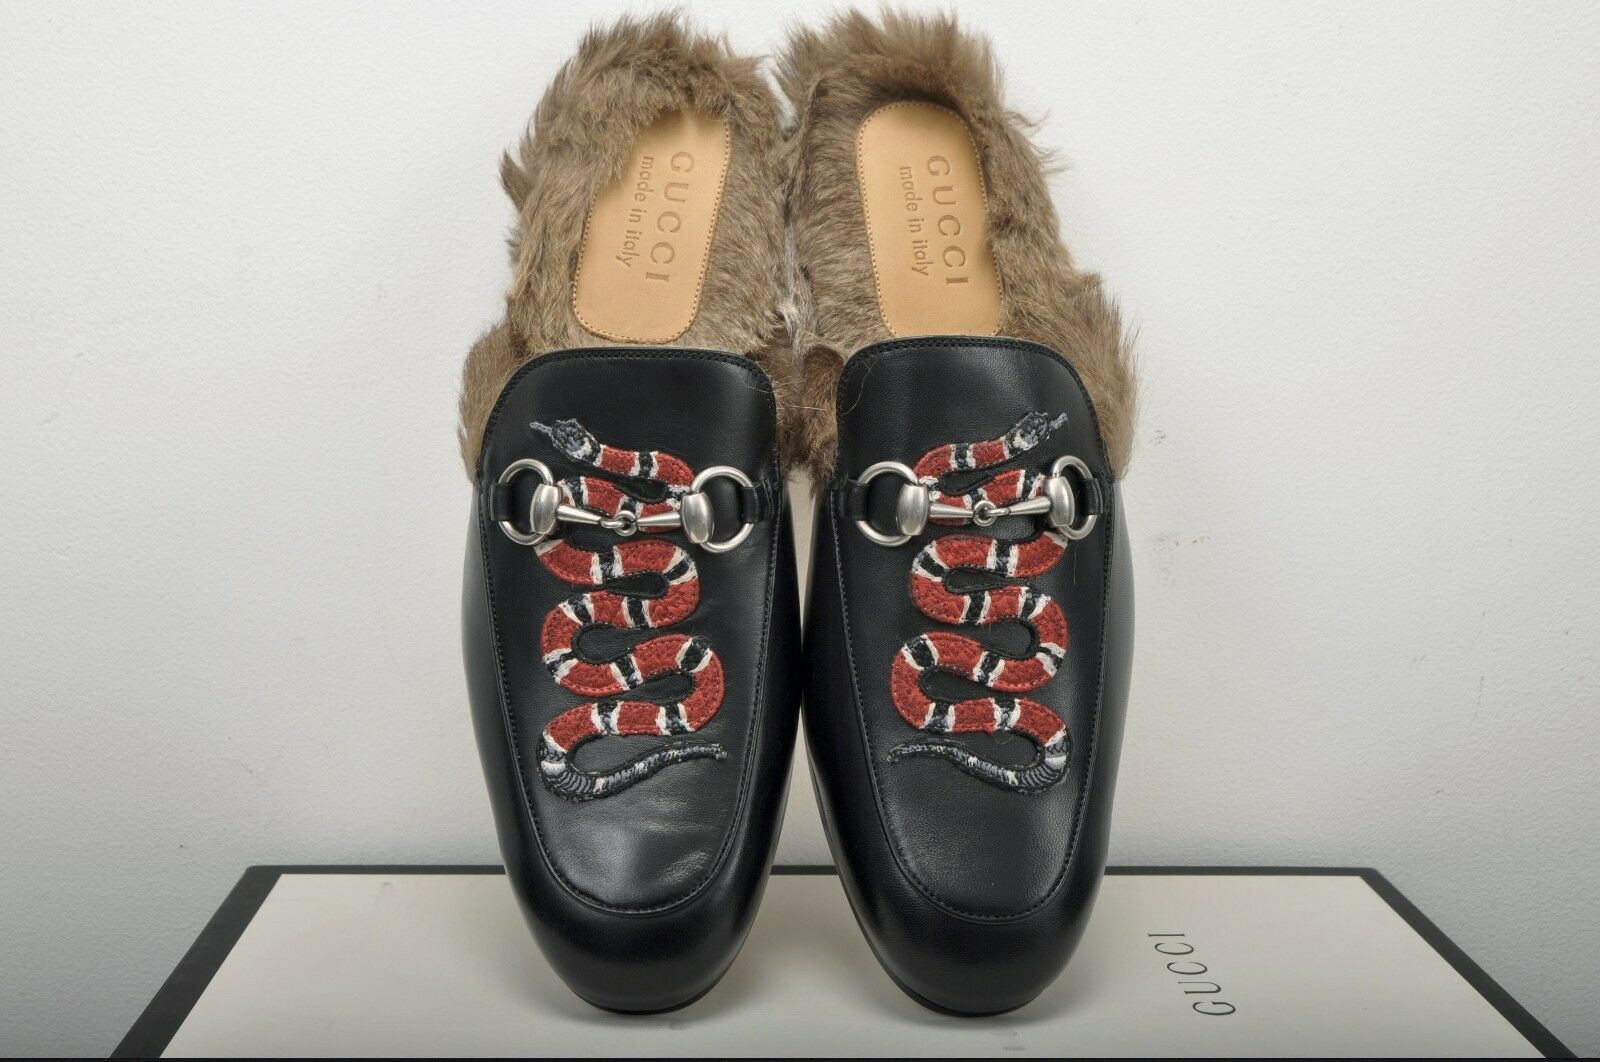 d763ec6d532 GUCCI 995  Authentic New Black Fur Lined Leather Princetown Snake ...